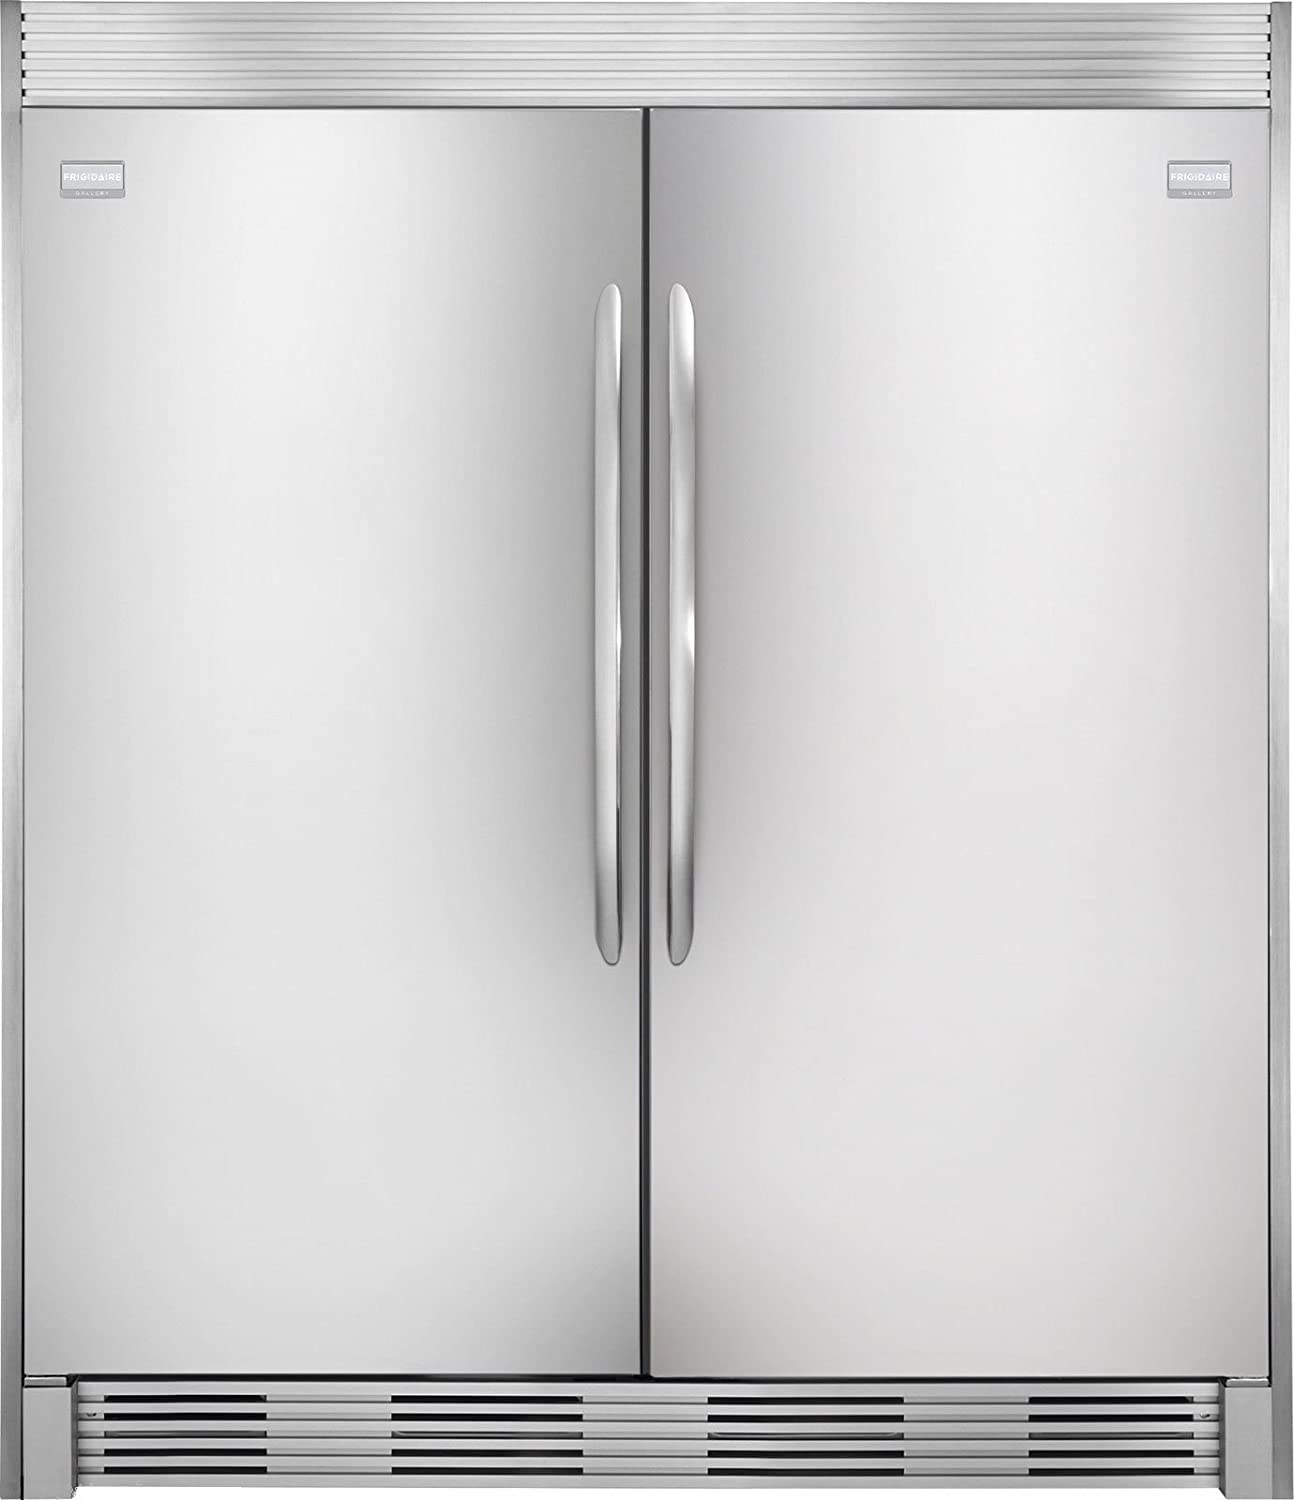 Frigidaire Gallery Refrigerator Freezer Combo with Trim Kit